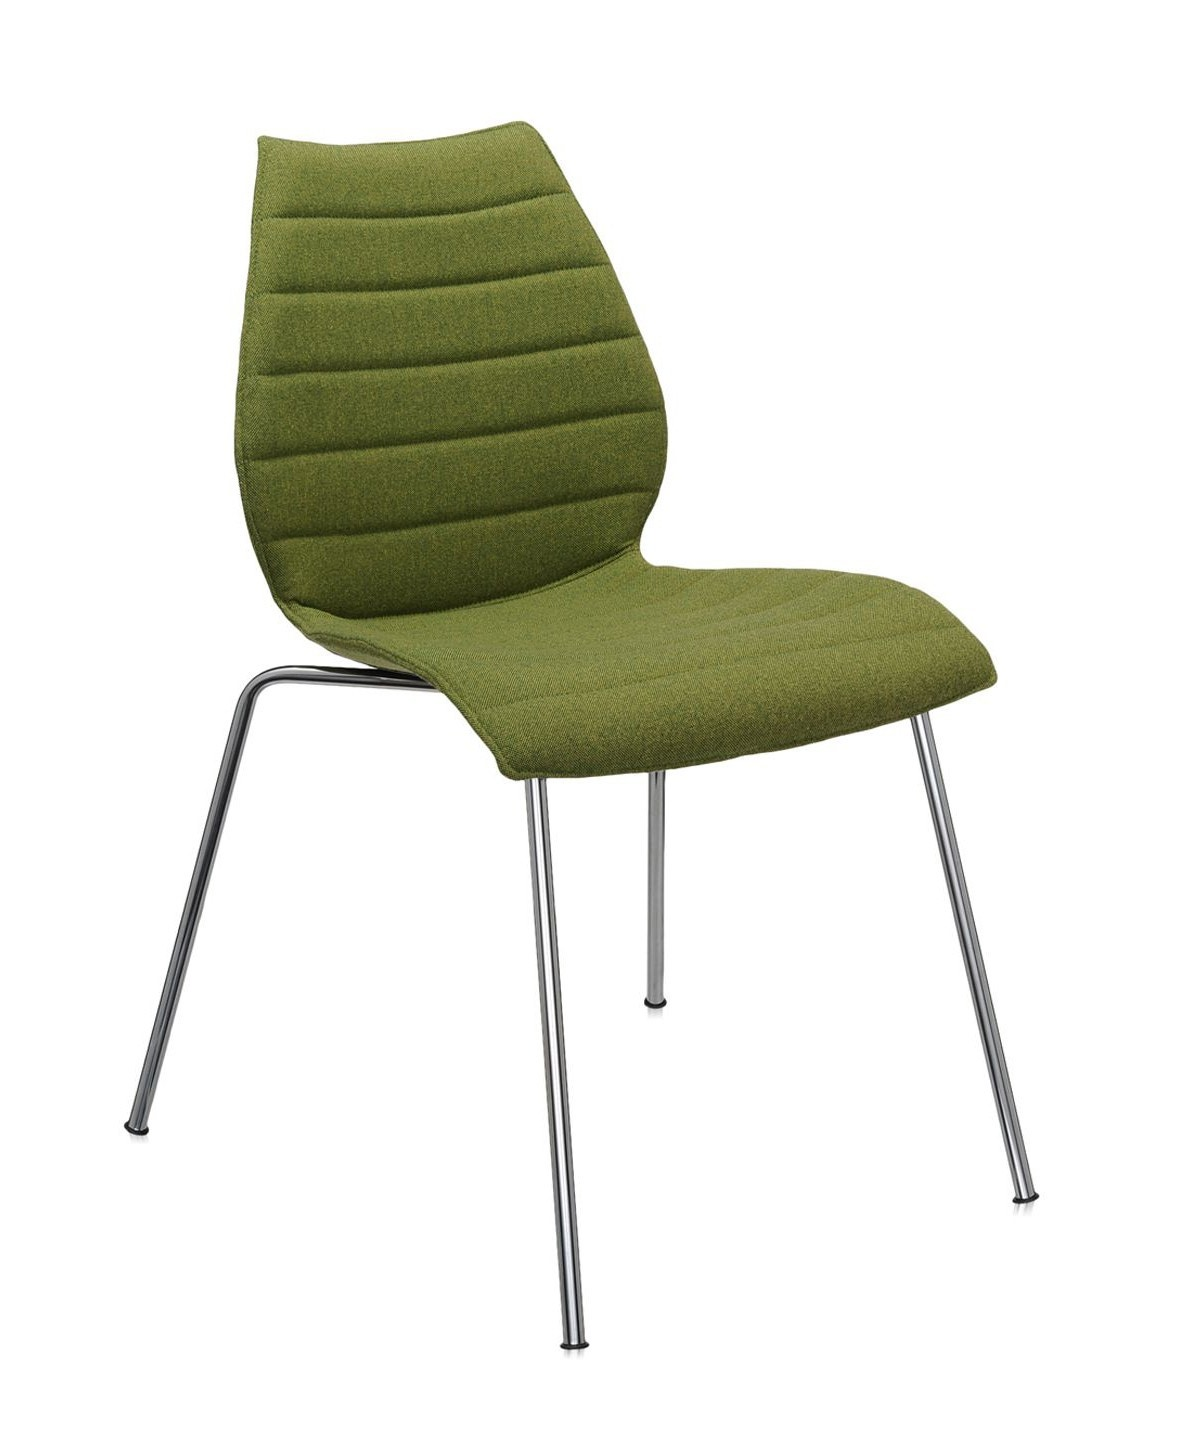 Kartell Maui Soft Chair (Priced Each, Sold in Sets of 2)